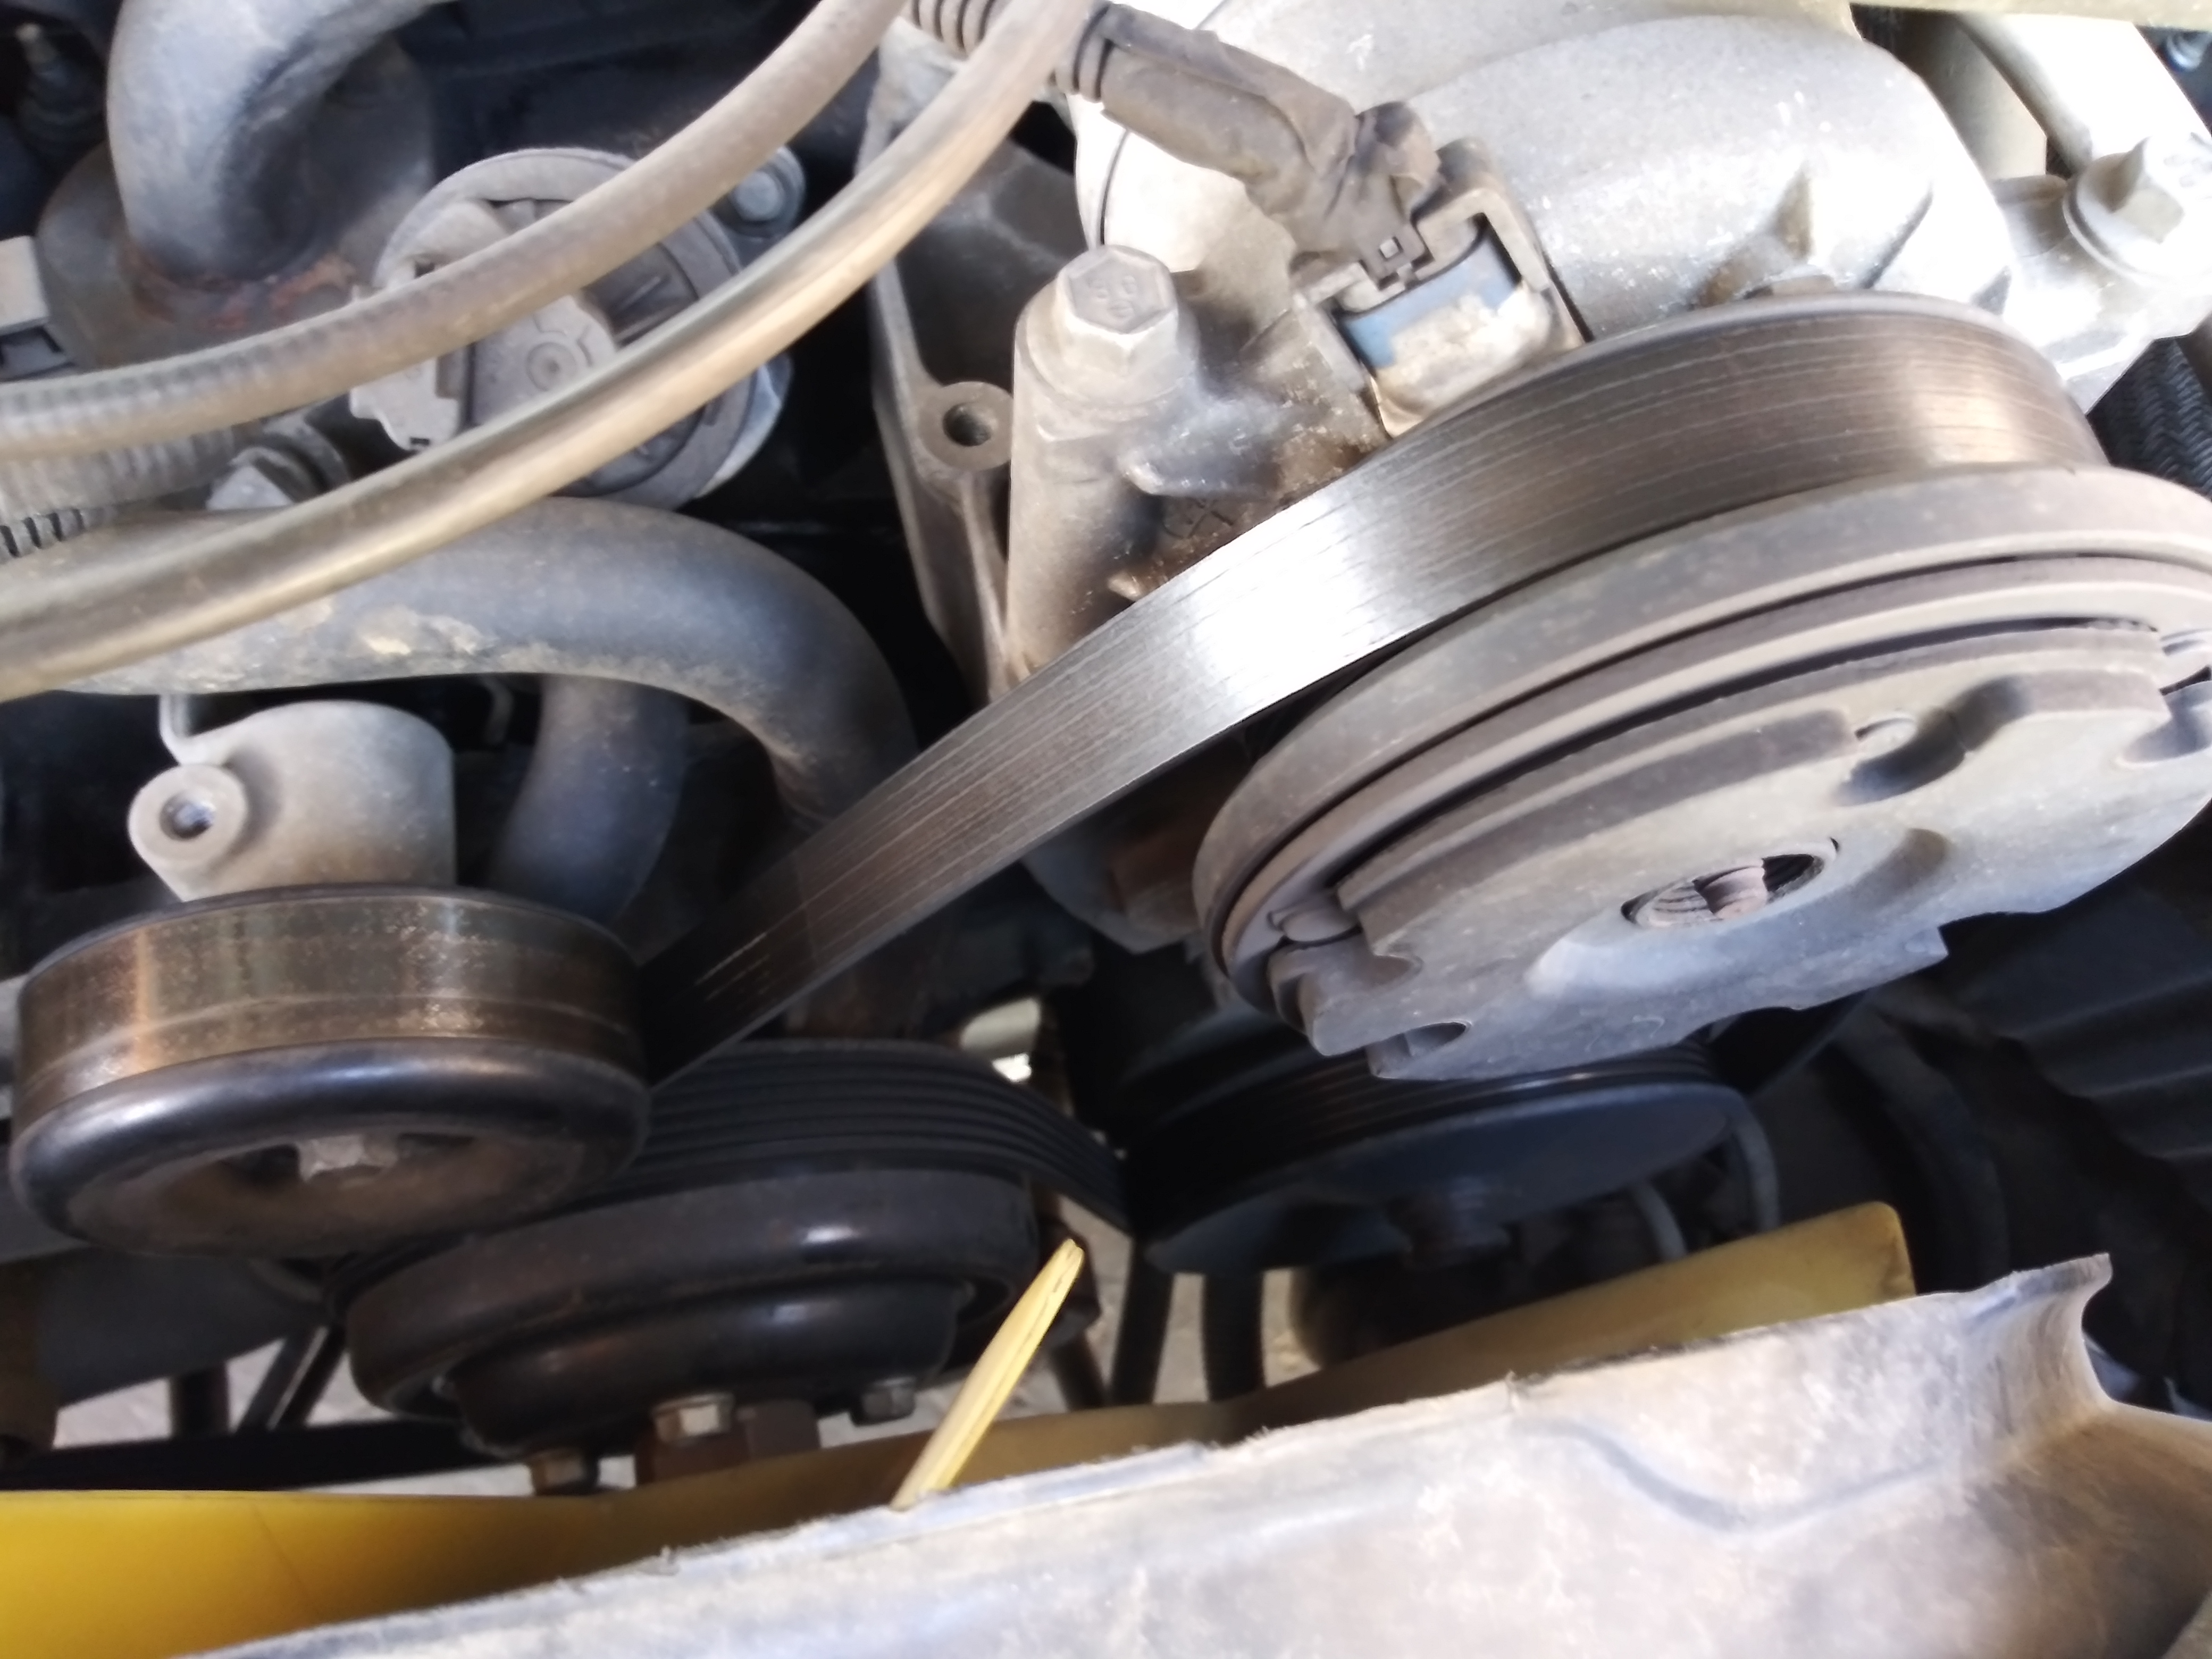 Mobile mechanic in the San Diego, CA area.